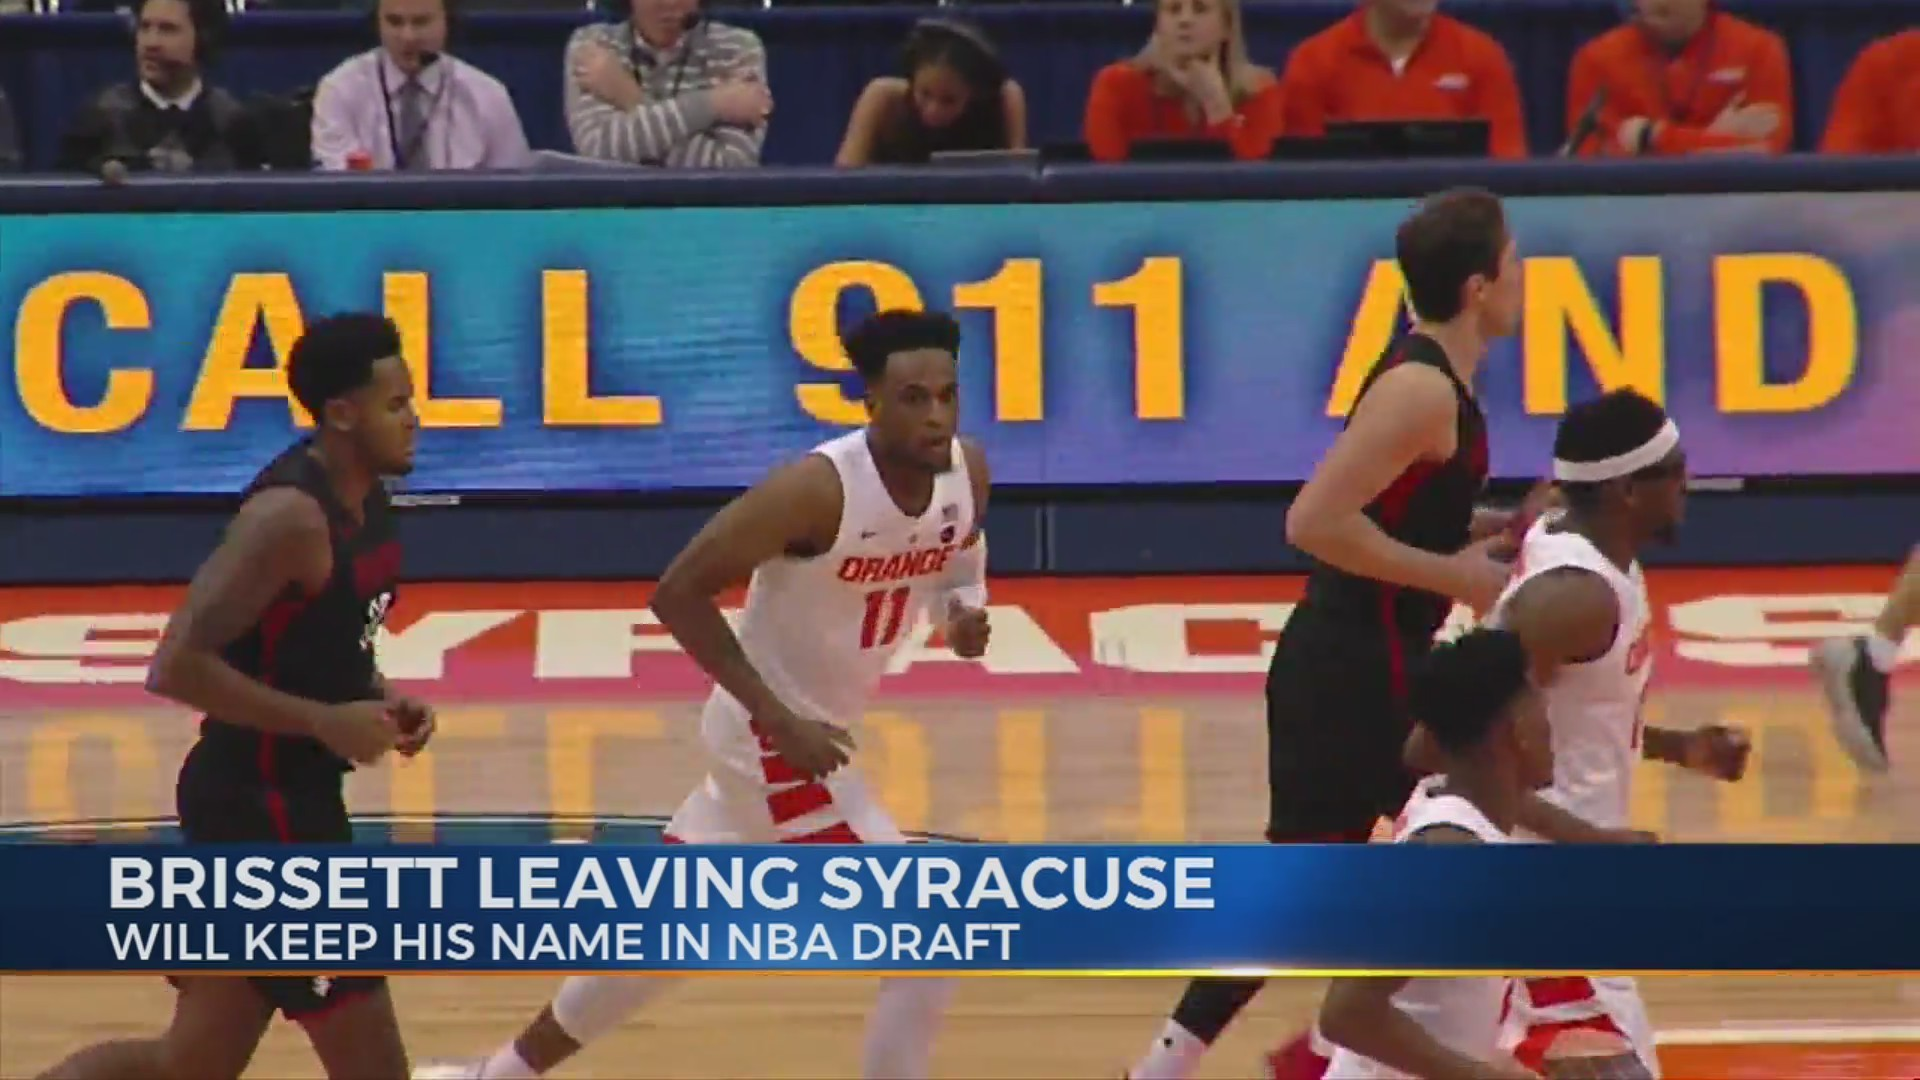 Brissett to remain in NBA draft, leave Syracuse